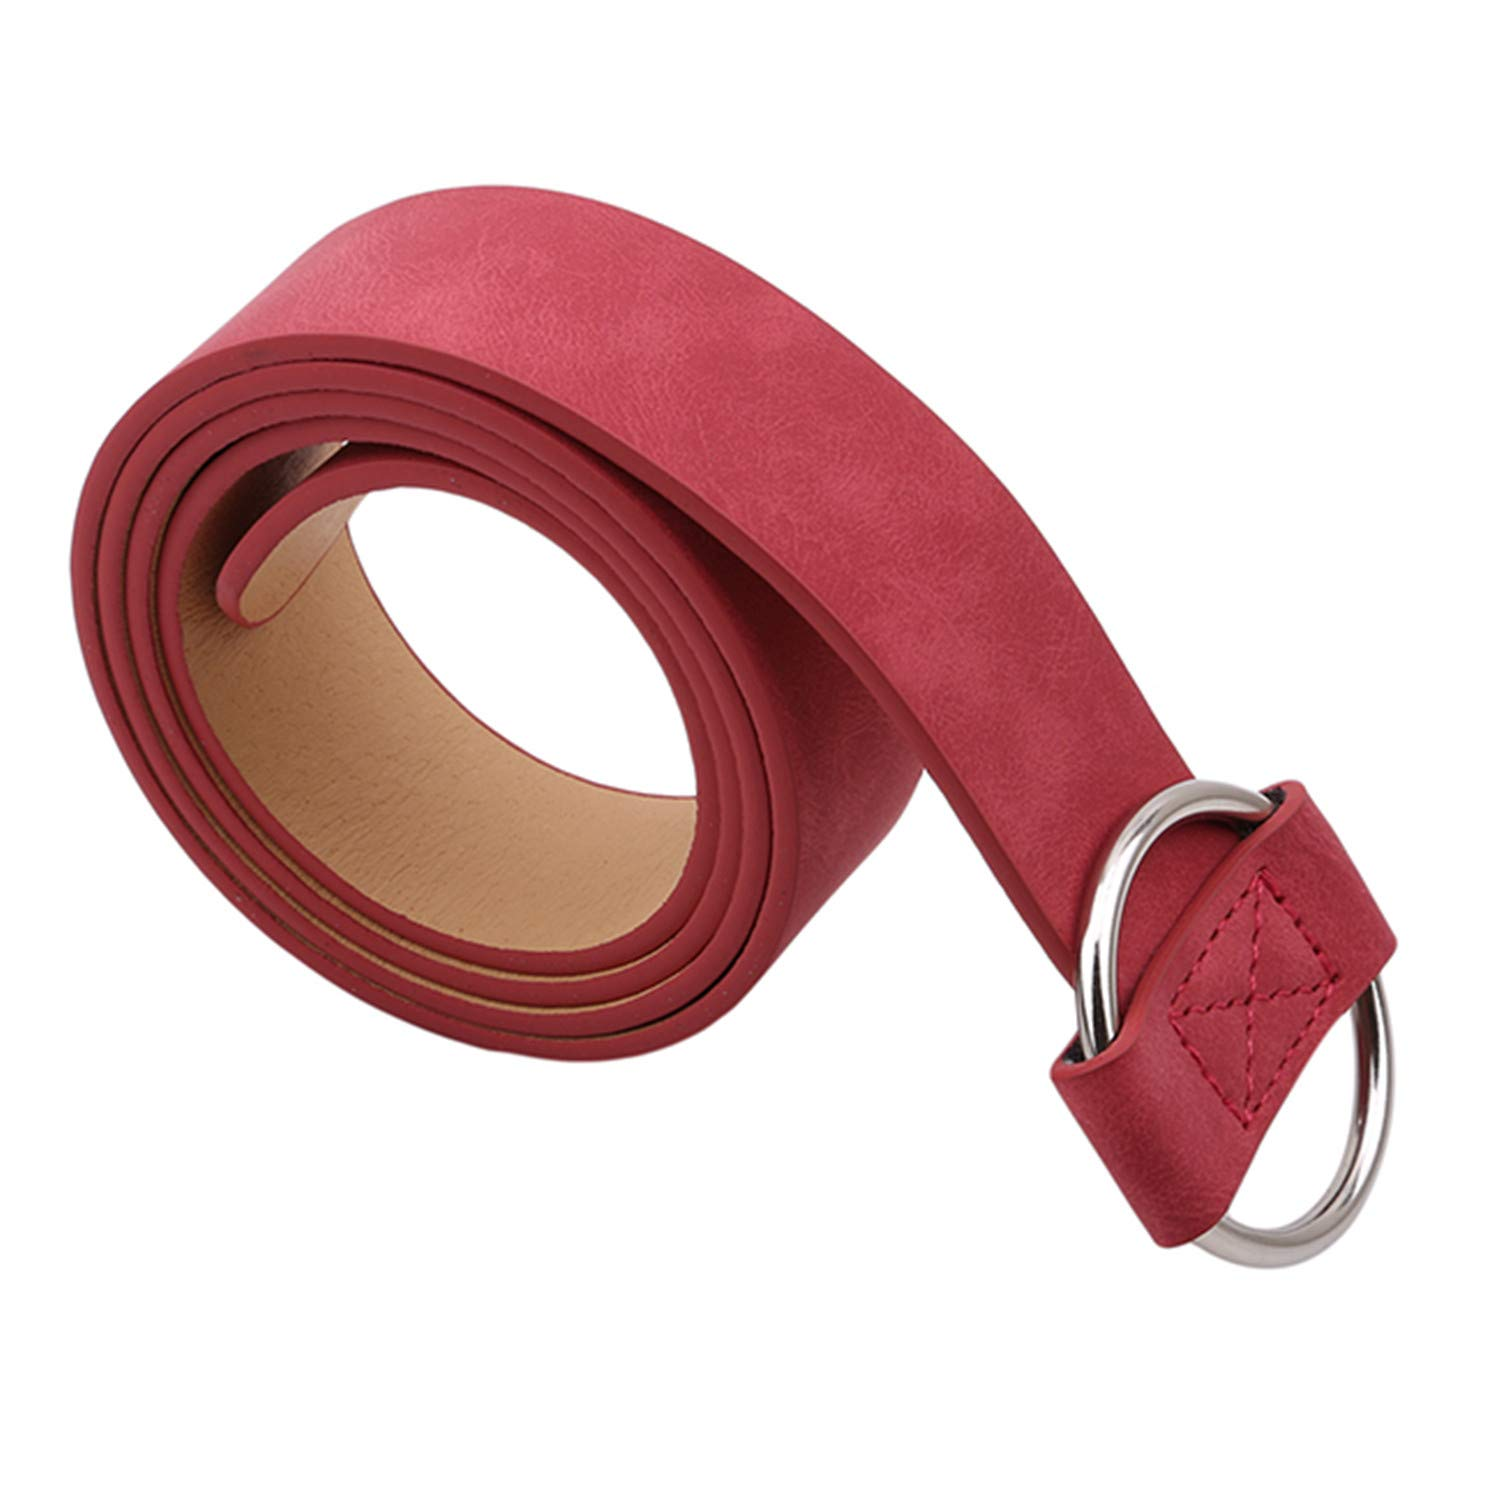 Female Casual Round Buckle Wide Belts For Women Dress Jeans Belt Woman Ladies Faux Leather Straps